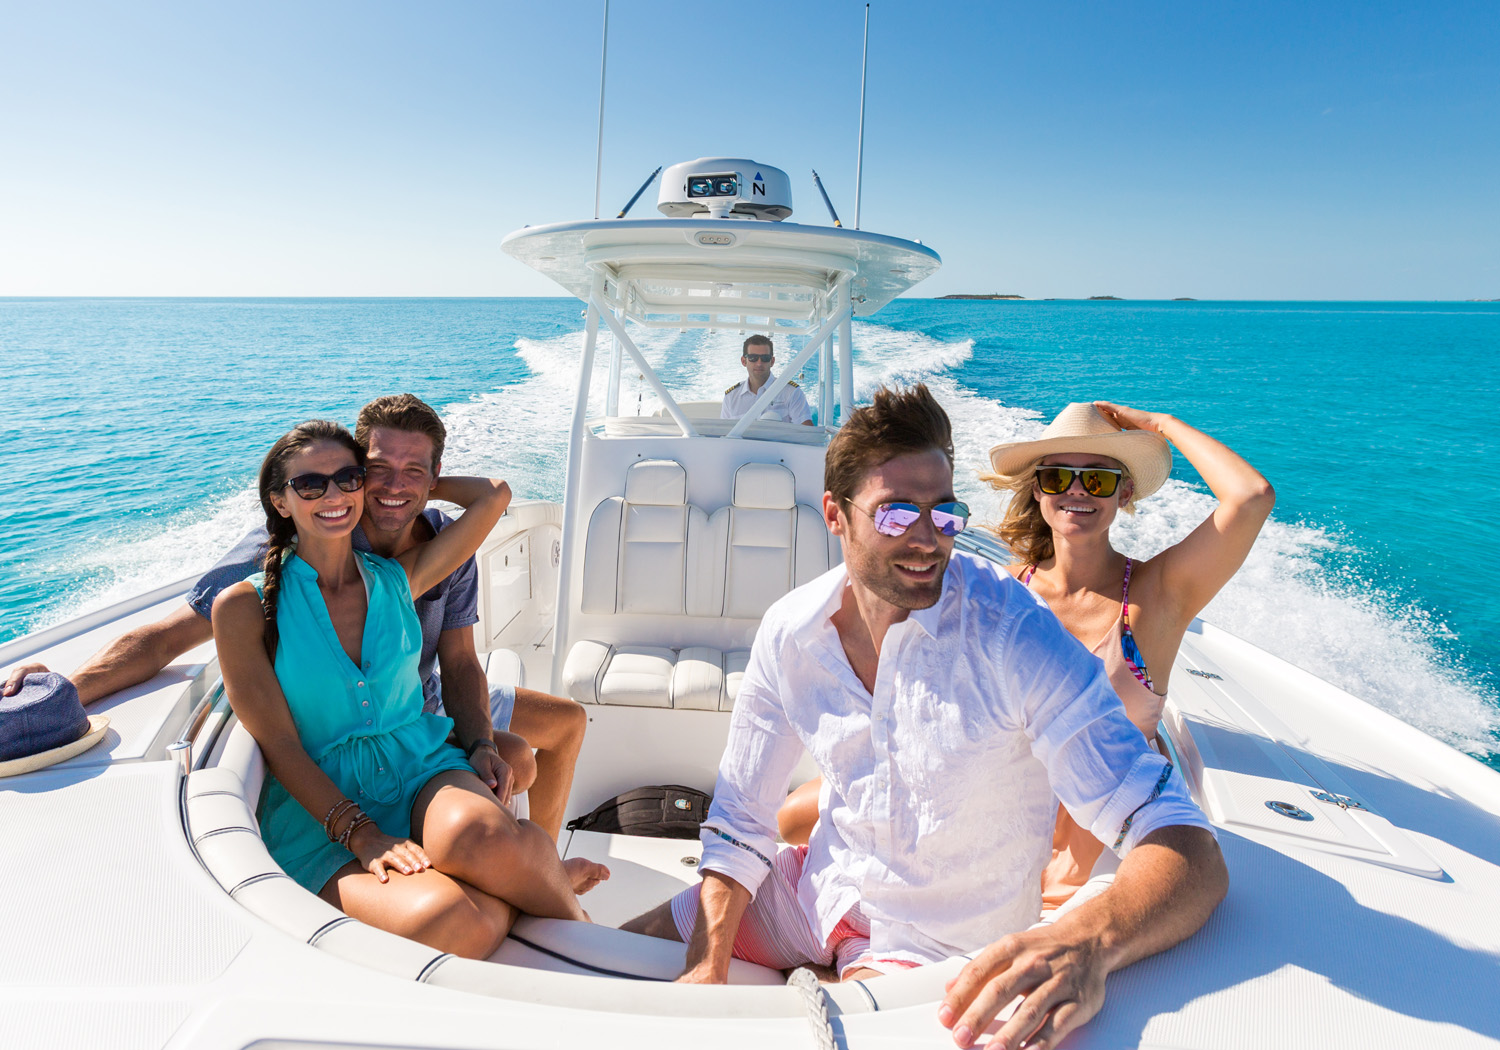 Fun holidays to look forward to on a superyacht